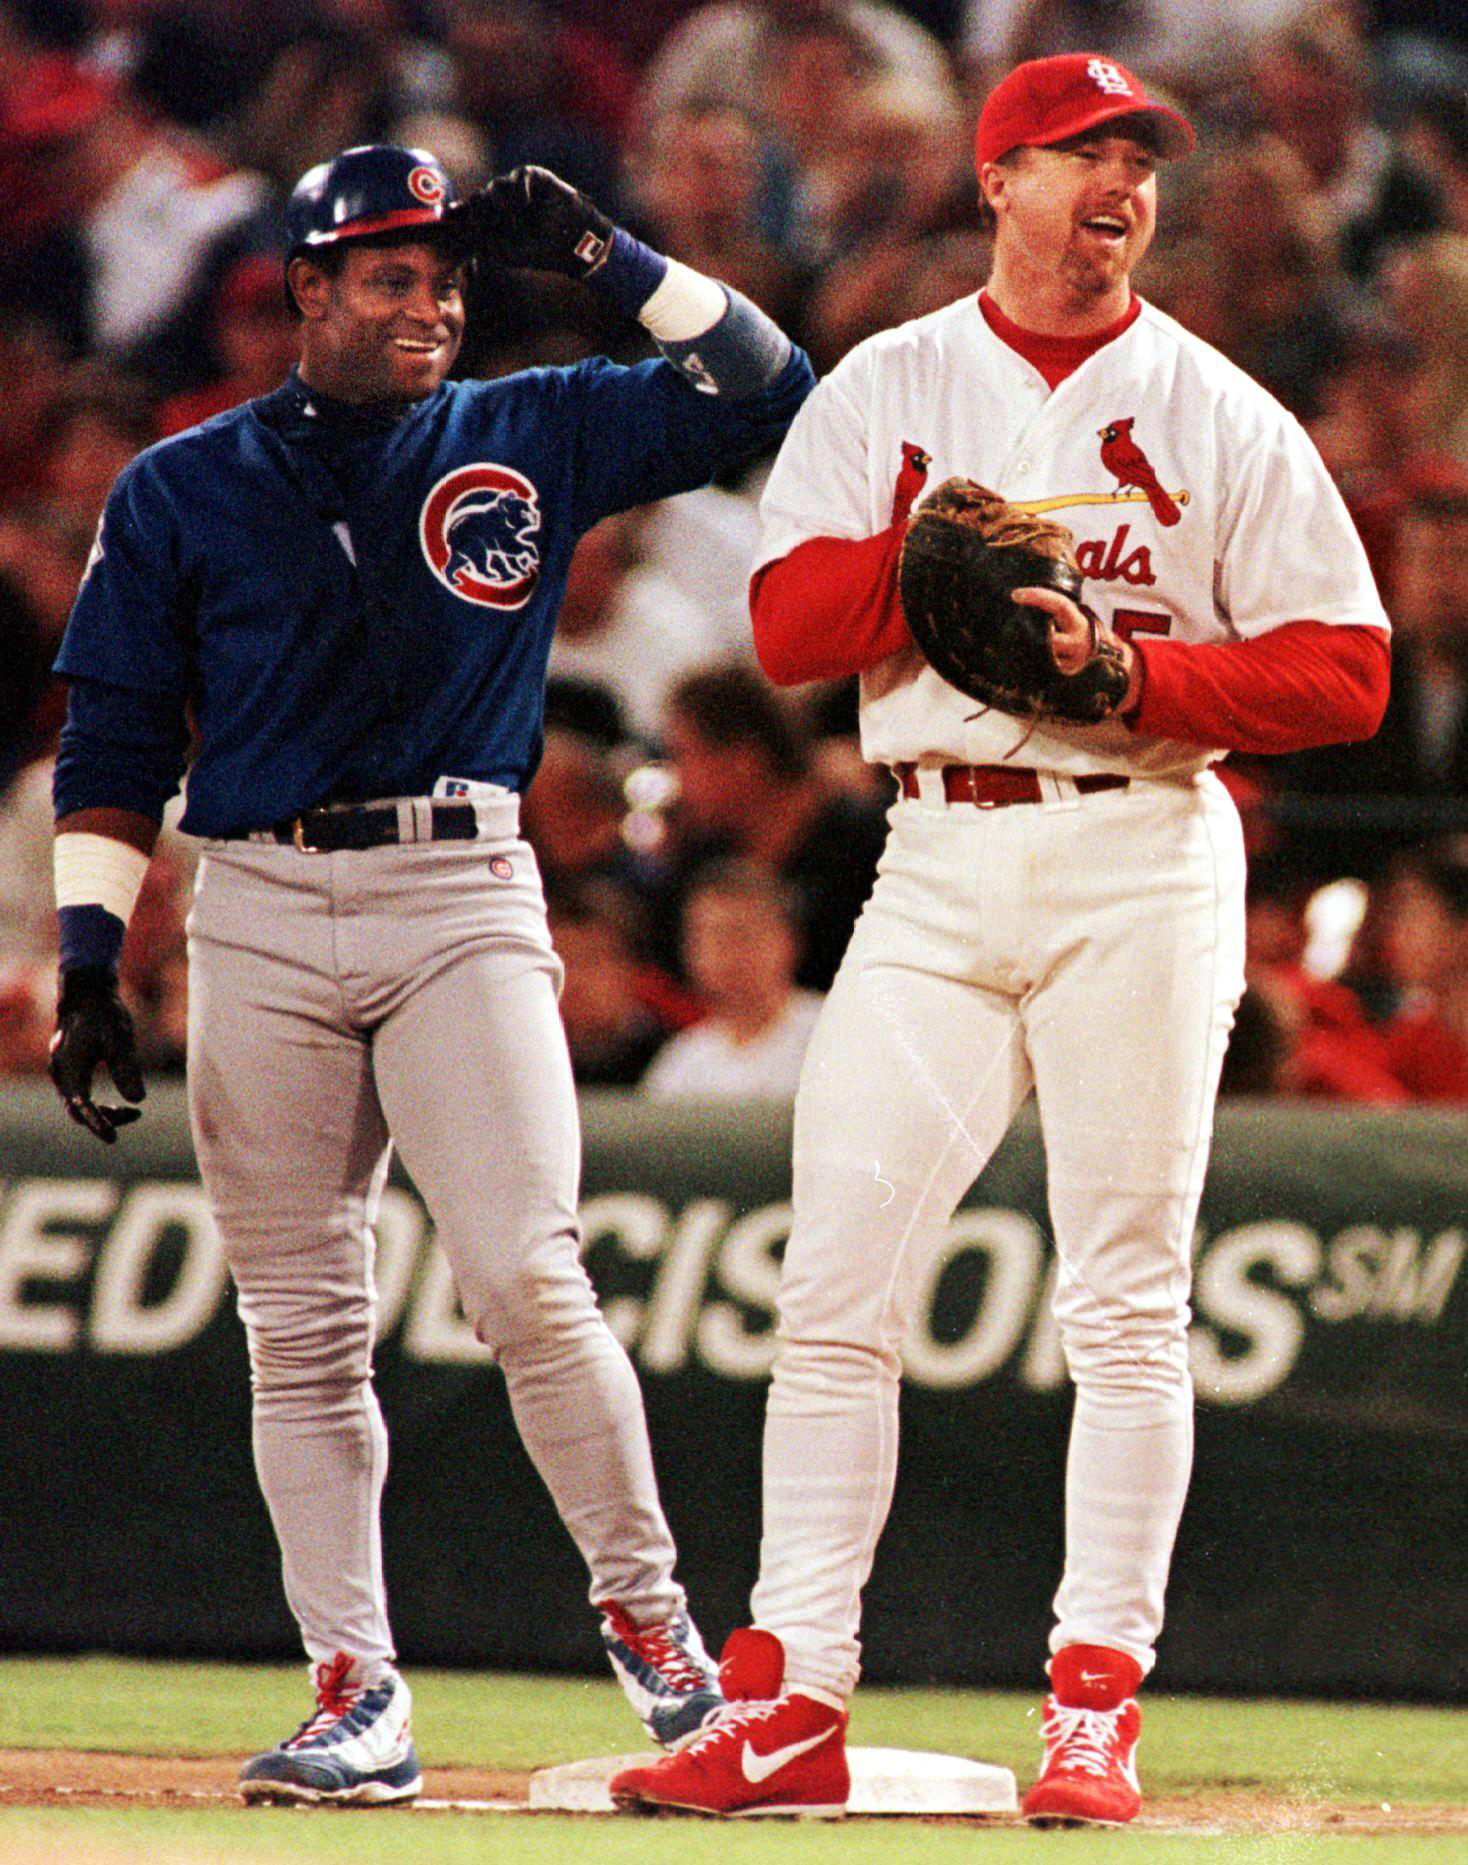 Chicago Cubs' Sammy Sosa (L), shares a laugh with St. Louis Cardinals' first baseman Mark McGwire (R), after receiving a walk in the third inning. McGwire stayed at 63 home runs and Sosa stayed at 62 as neither had a home run in the 3-2 Chicago victory.